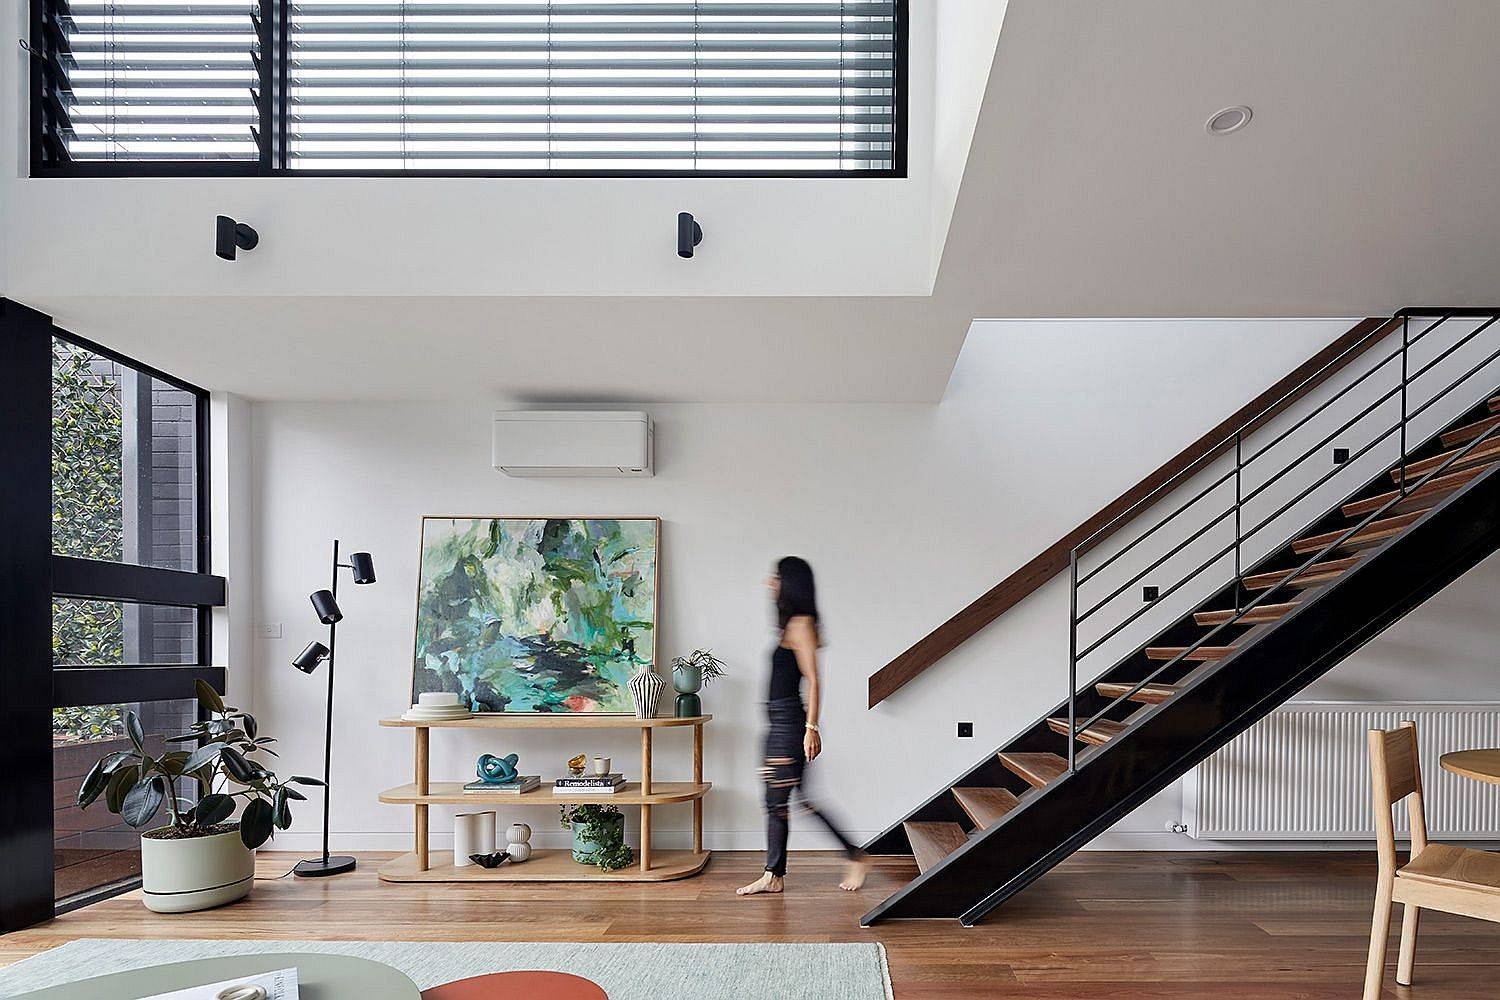 Double-height-living-area-in-the-rear-with-operable-windows-brings-in-ample-natural-light-64233